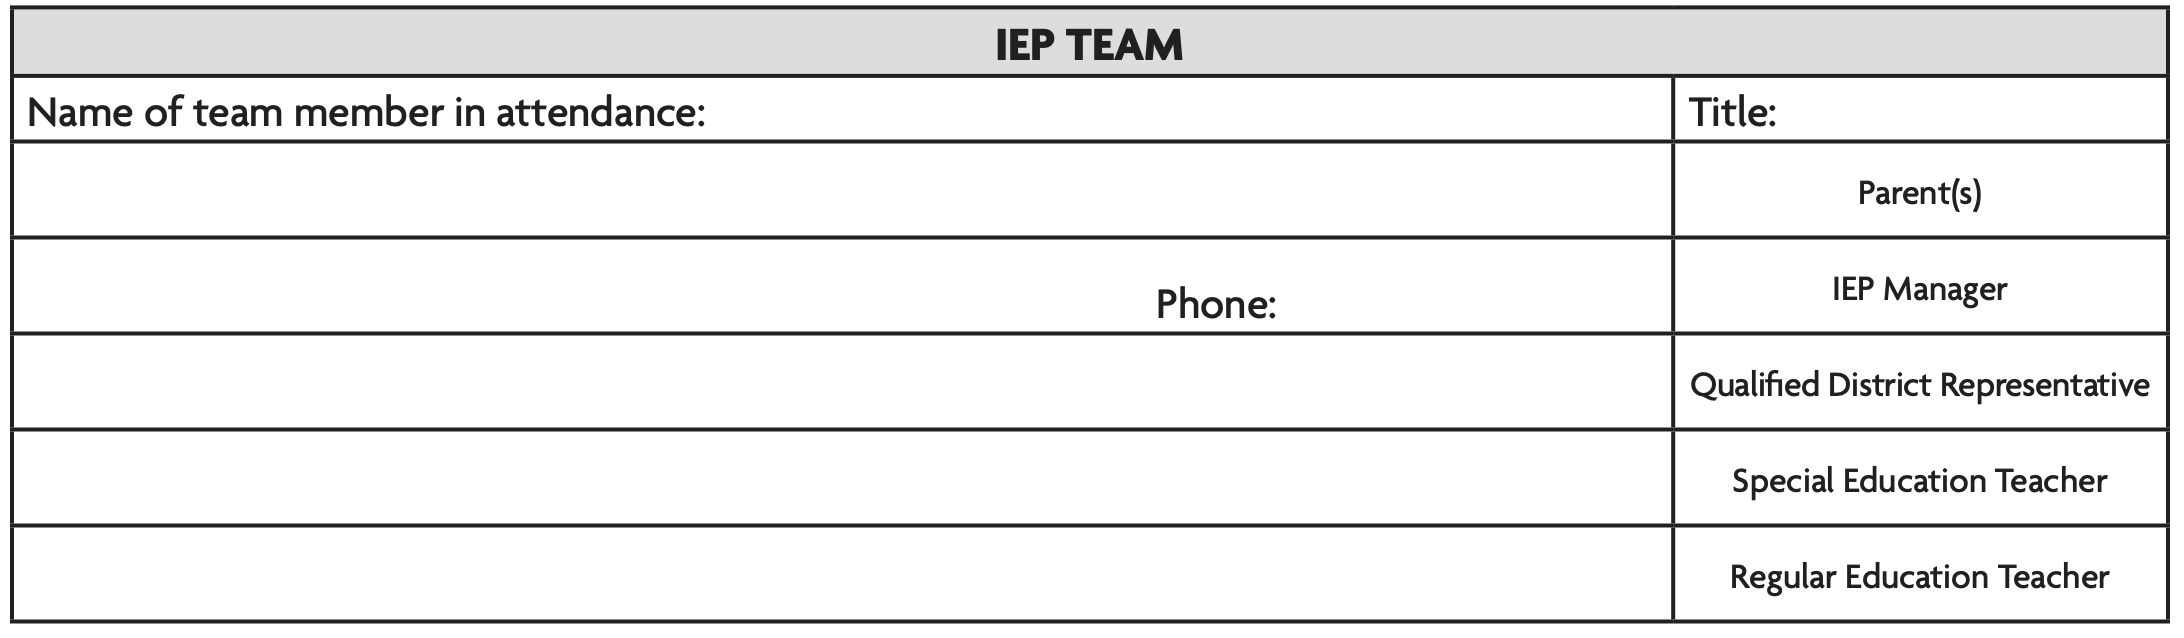 Image is a table made to be filled in with the names of IEP team members in attendance. Such members are parents, IEP manager, qualified district representative, special education teacher, and regular education teacher.